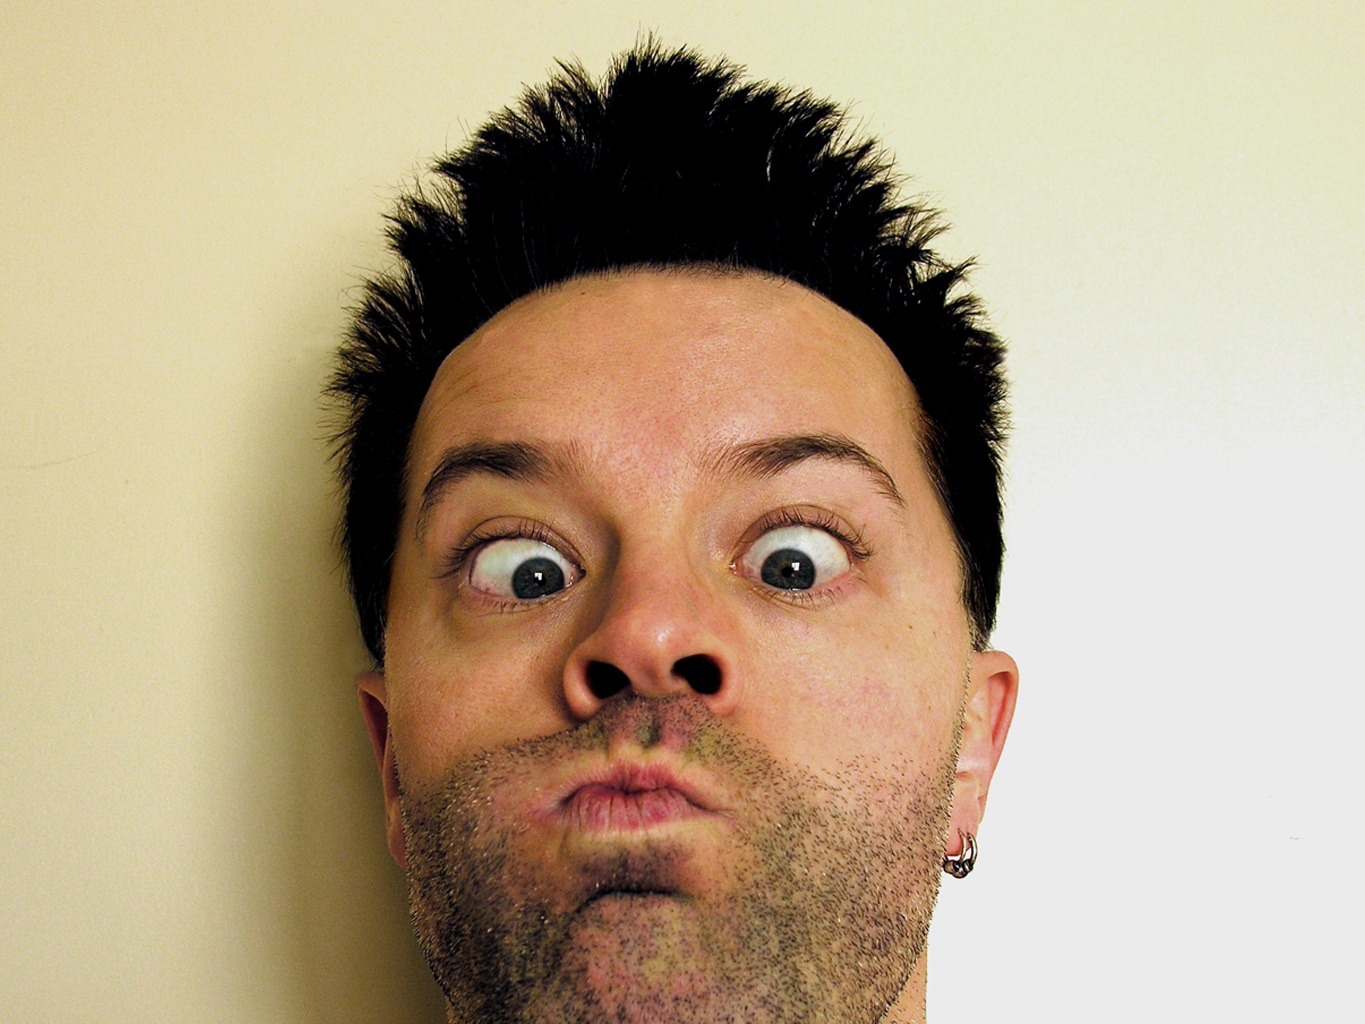 Funny Faces: Funny Picture Clip: Weird & Funny Face Photo's Collection